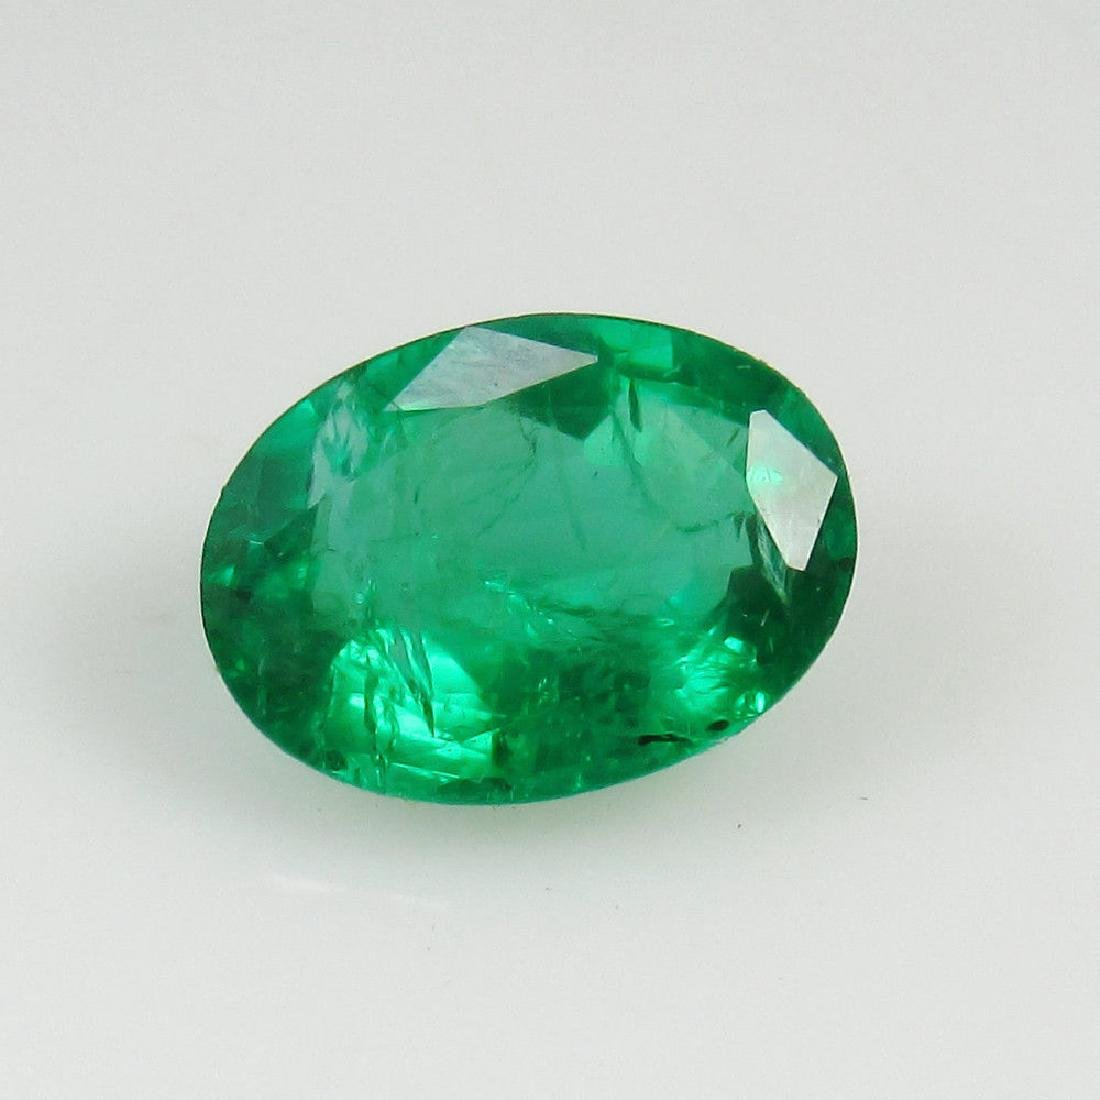 1.20 Ct Genuine Zambian Emerald Top Quality AAA++ Green - 2